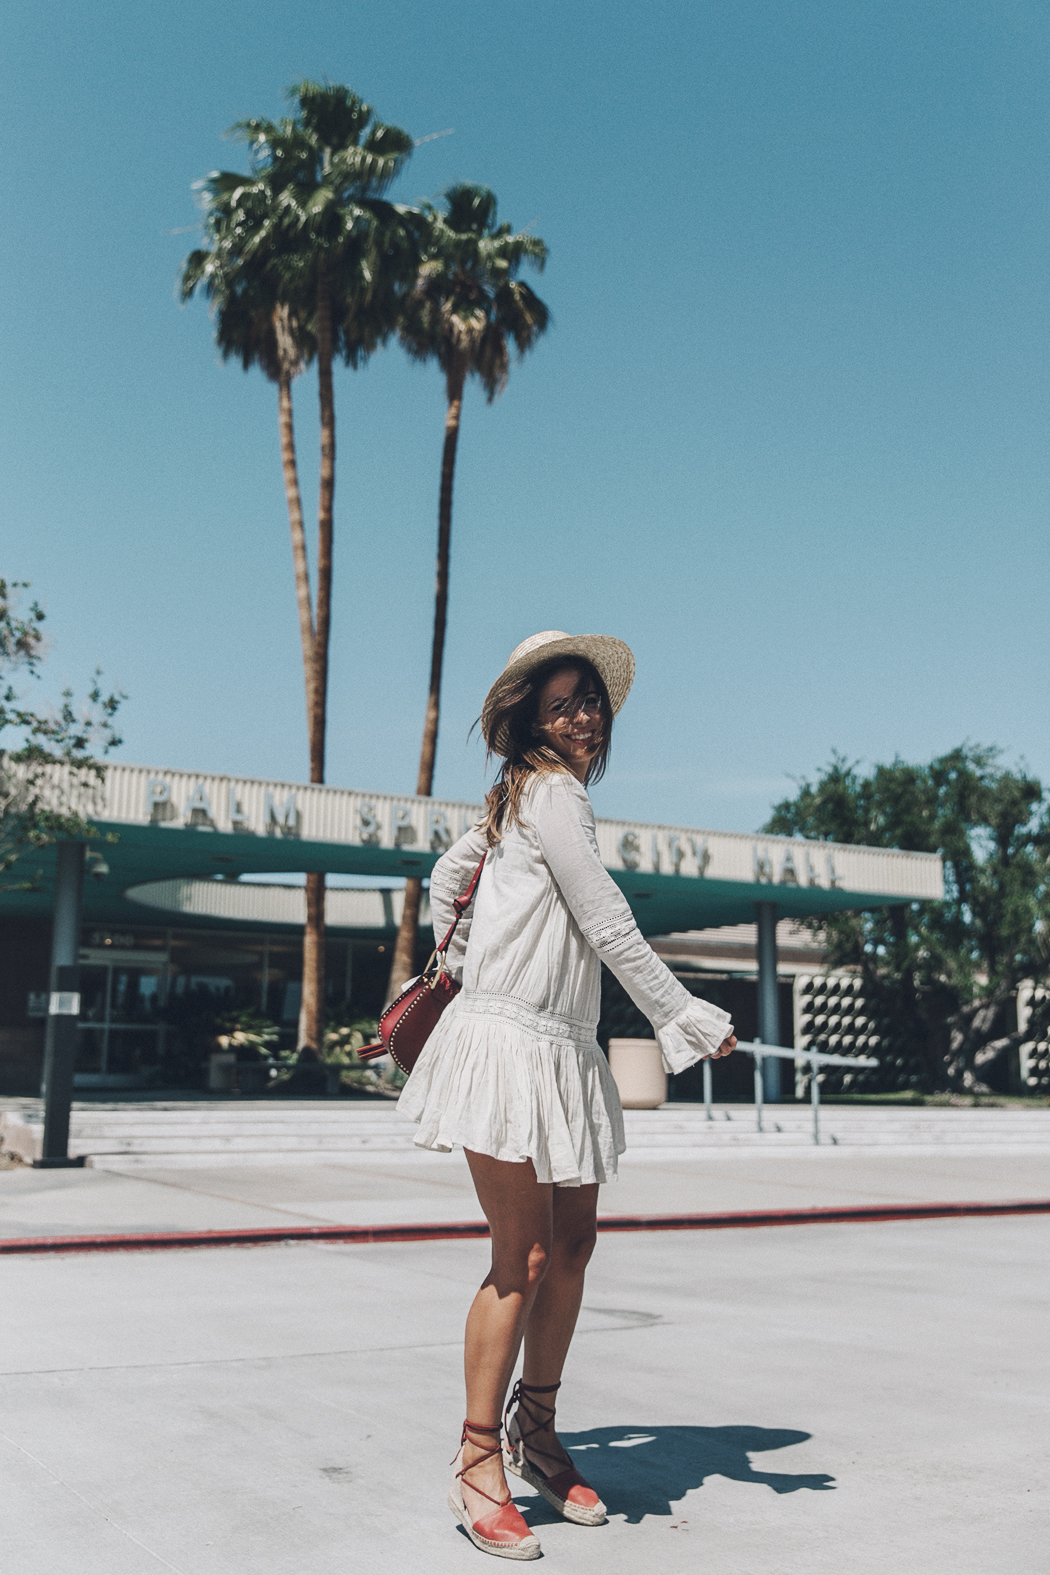 Coachella_2016-Revolve_Clothing-Tula_Rosa_Dress-Boho_Dress-Festival_Outfit-Straw_Hat-Soludos_Espadrilles-Collage_Vintage-19